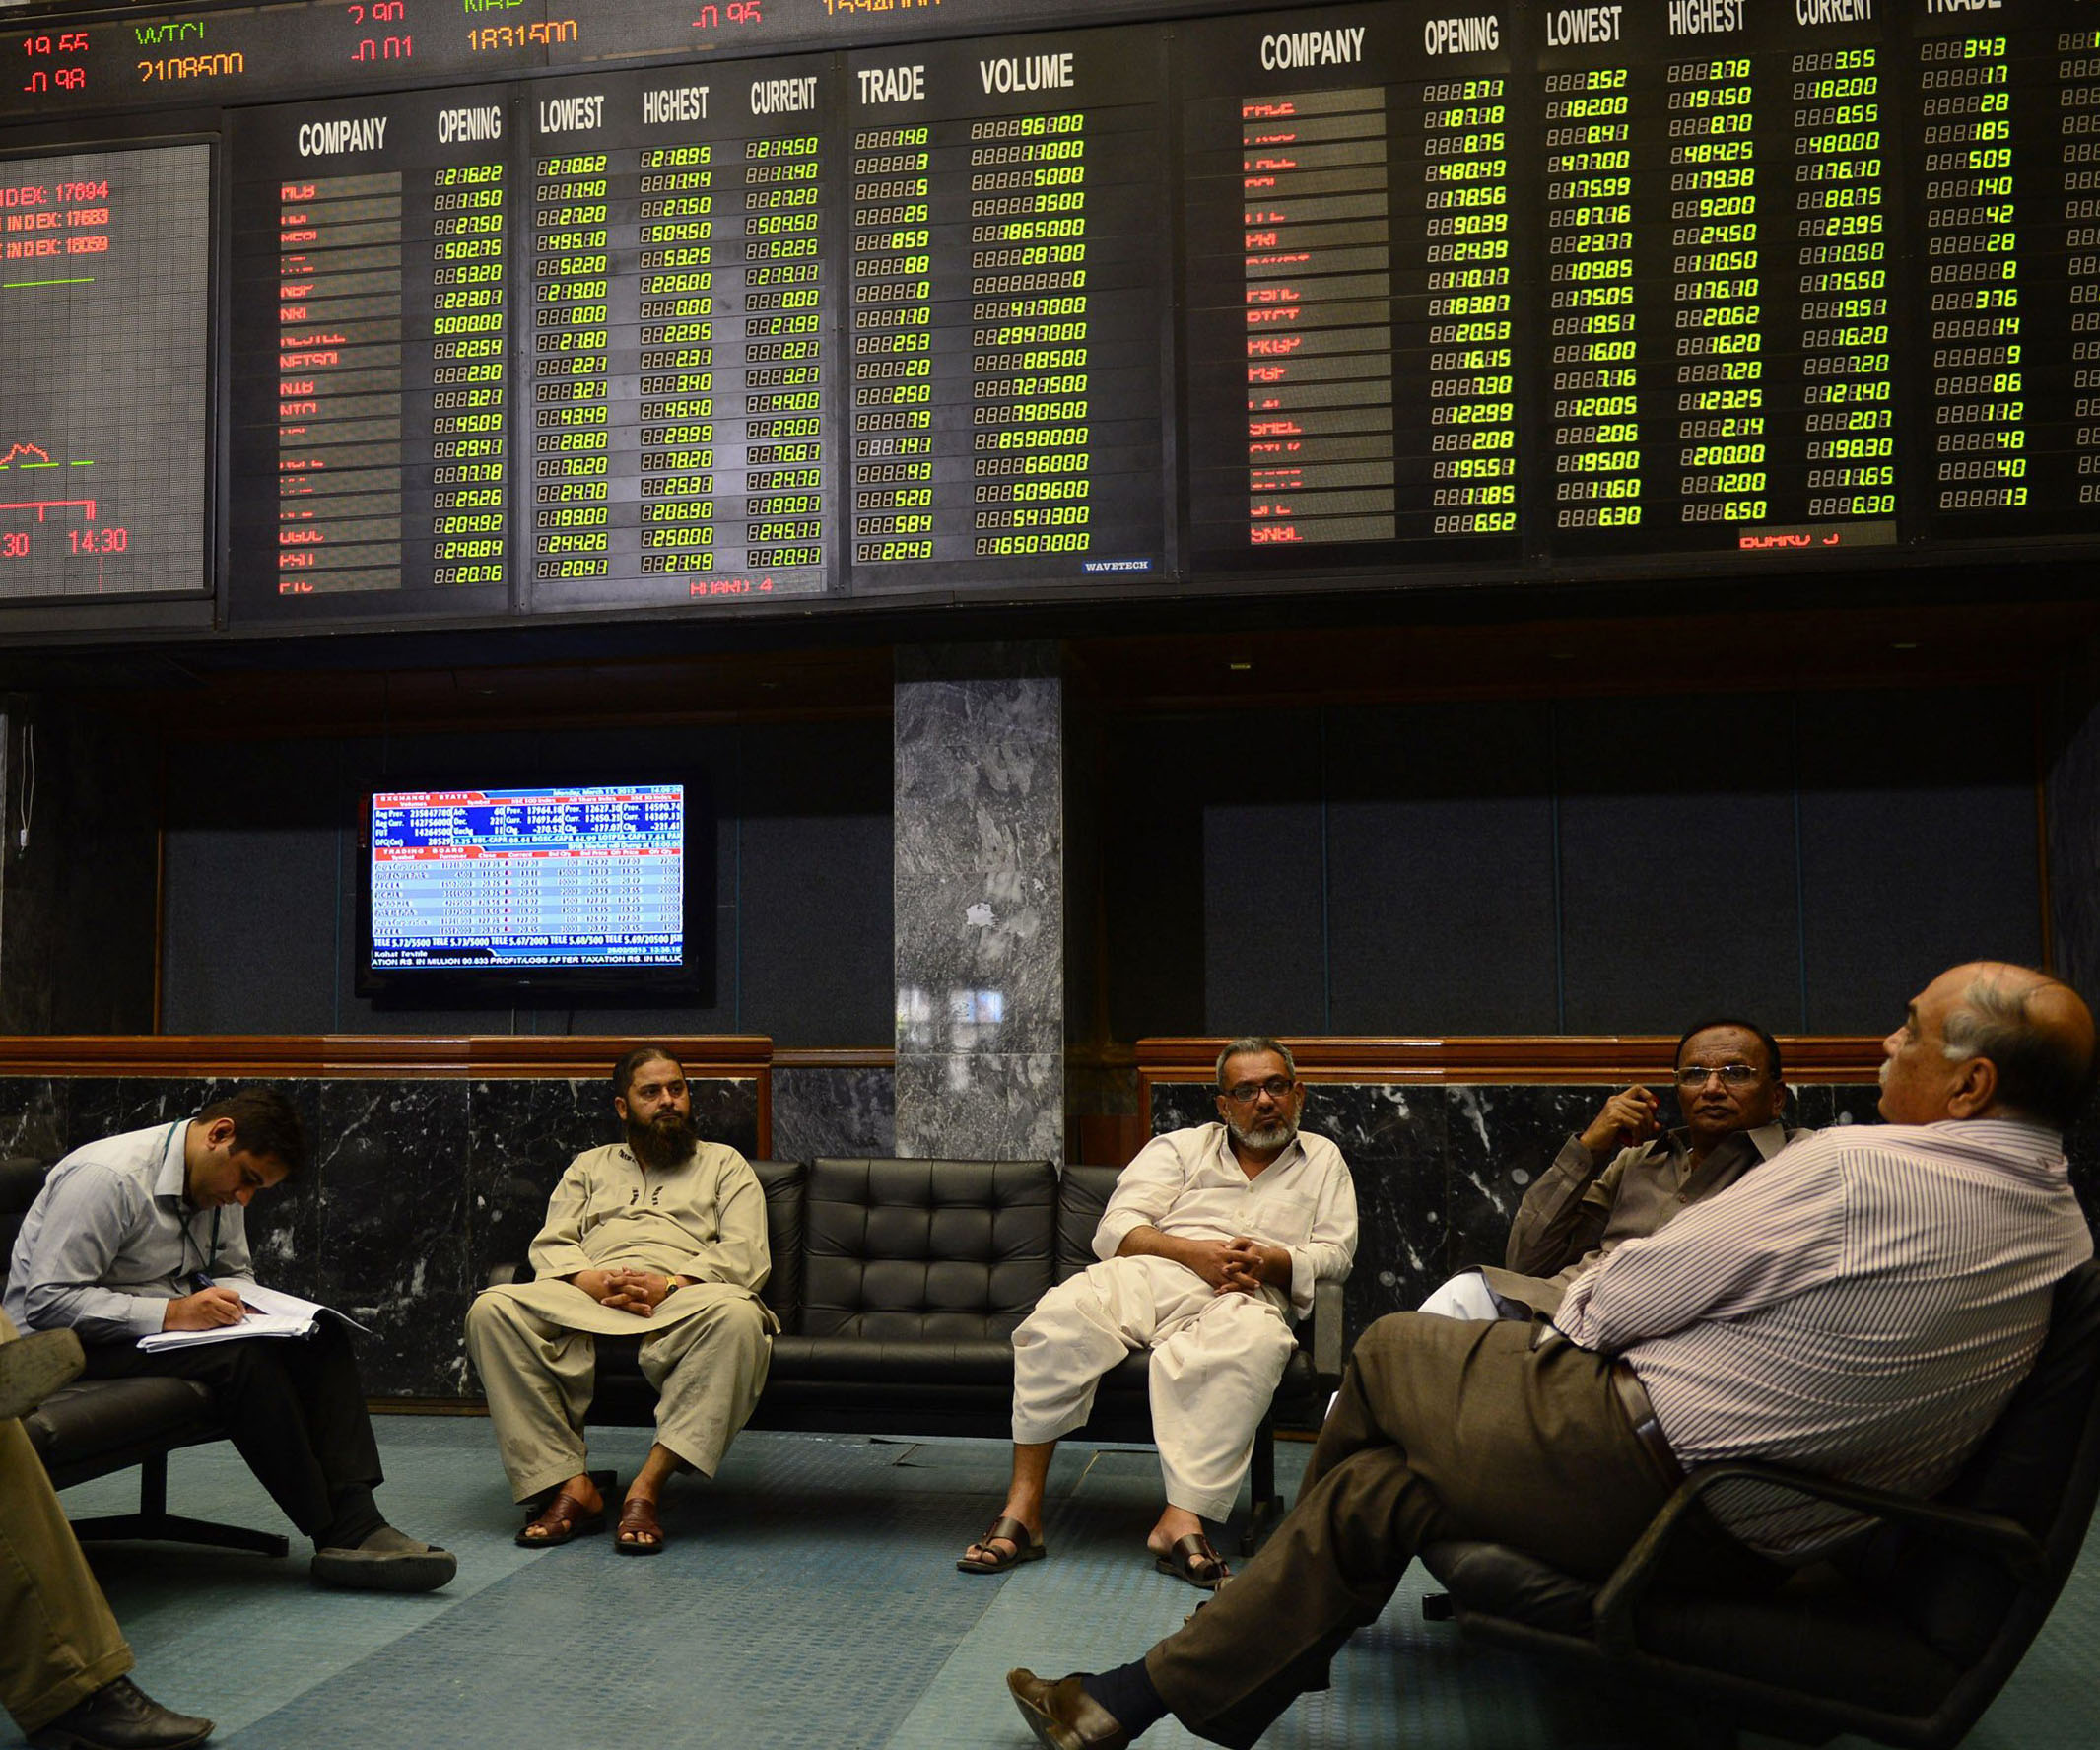 benchmark index loses 0 28 to settle at 37 026 27 photo afp